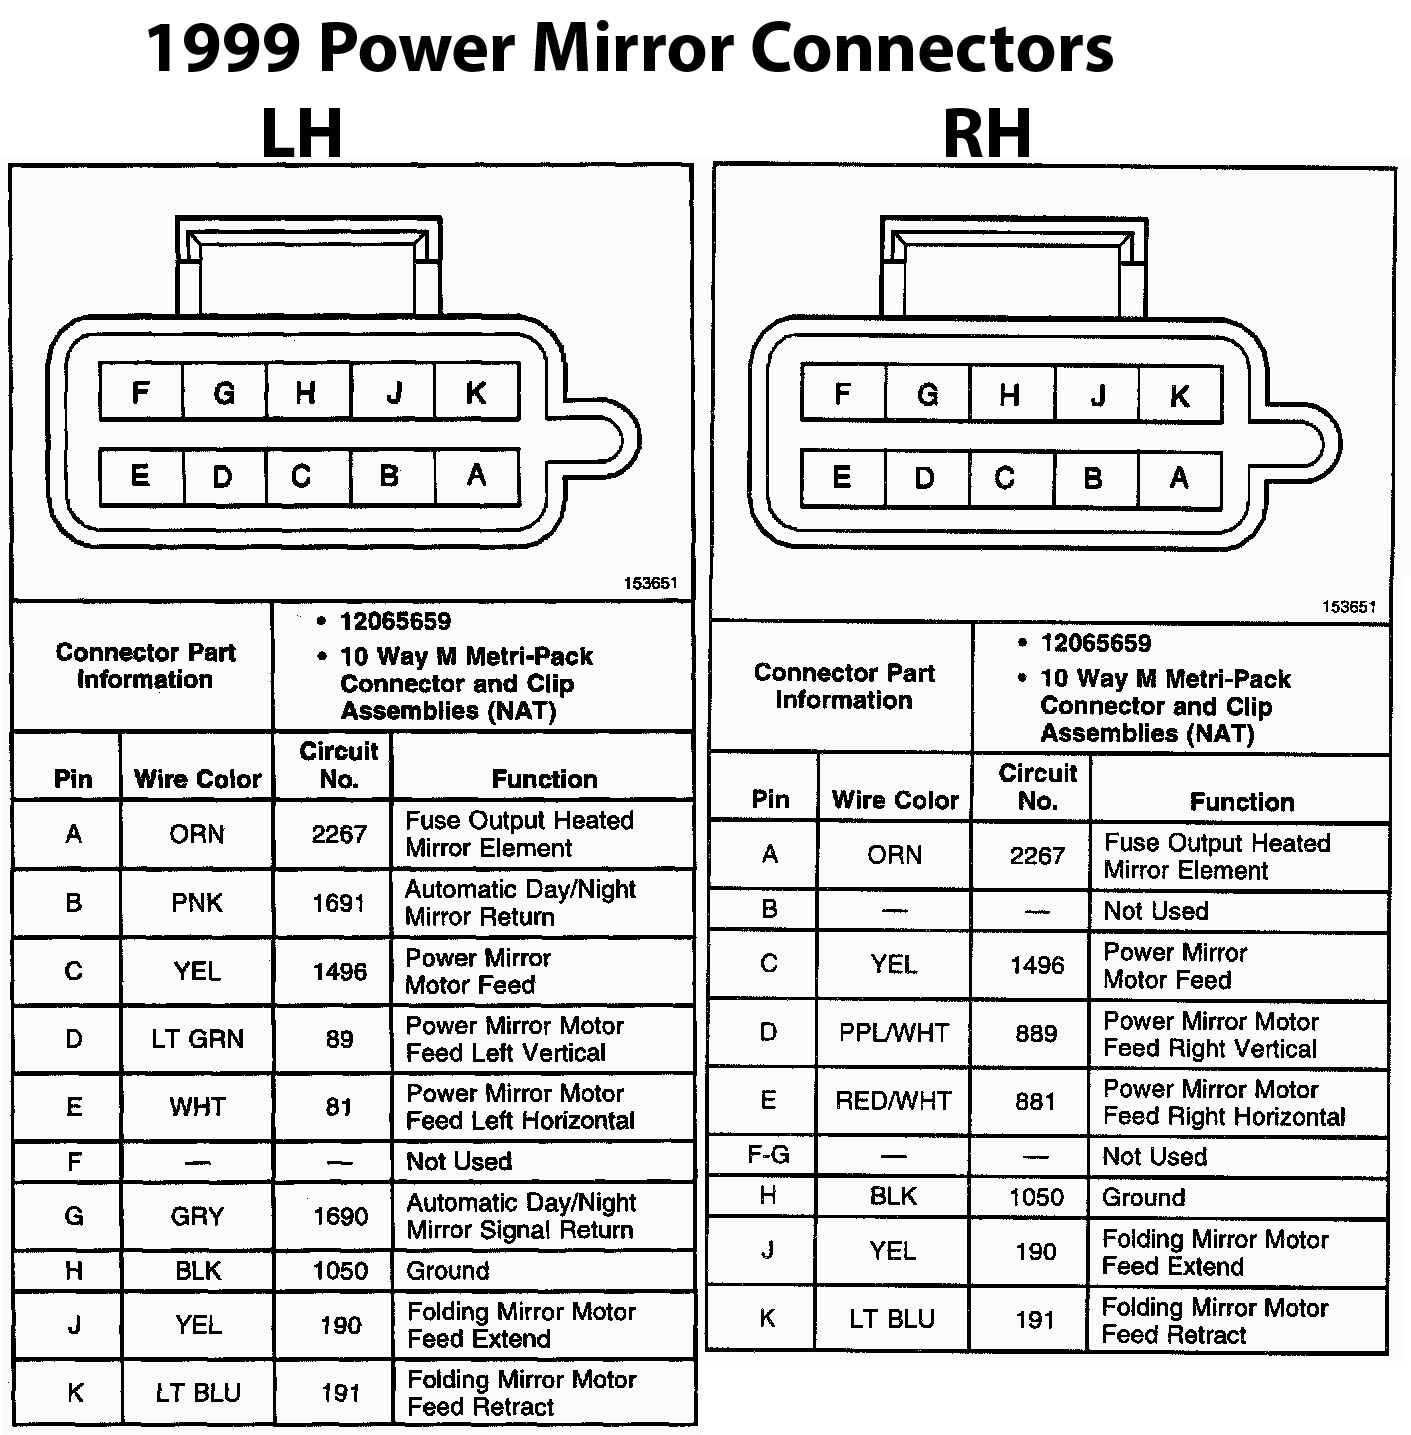 2003 Gmc Power Mirrors Wiring Diagram - Wiring Diagram For Light ...